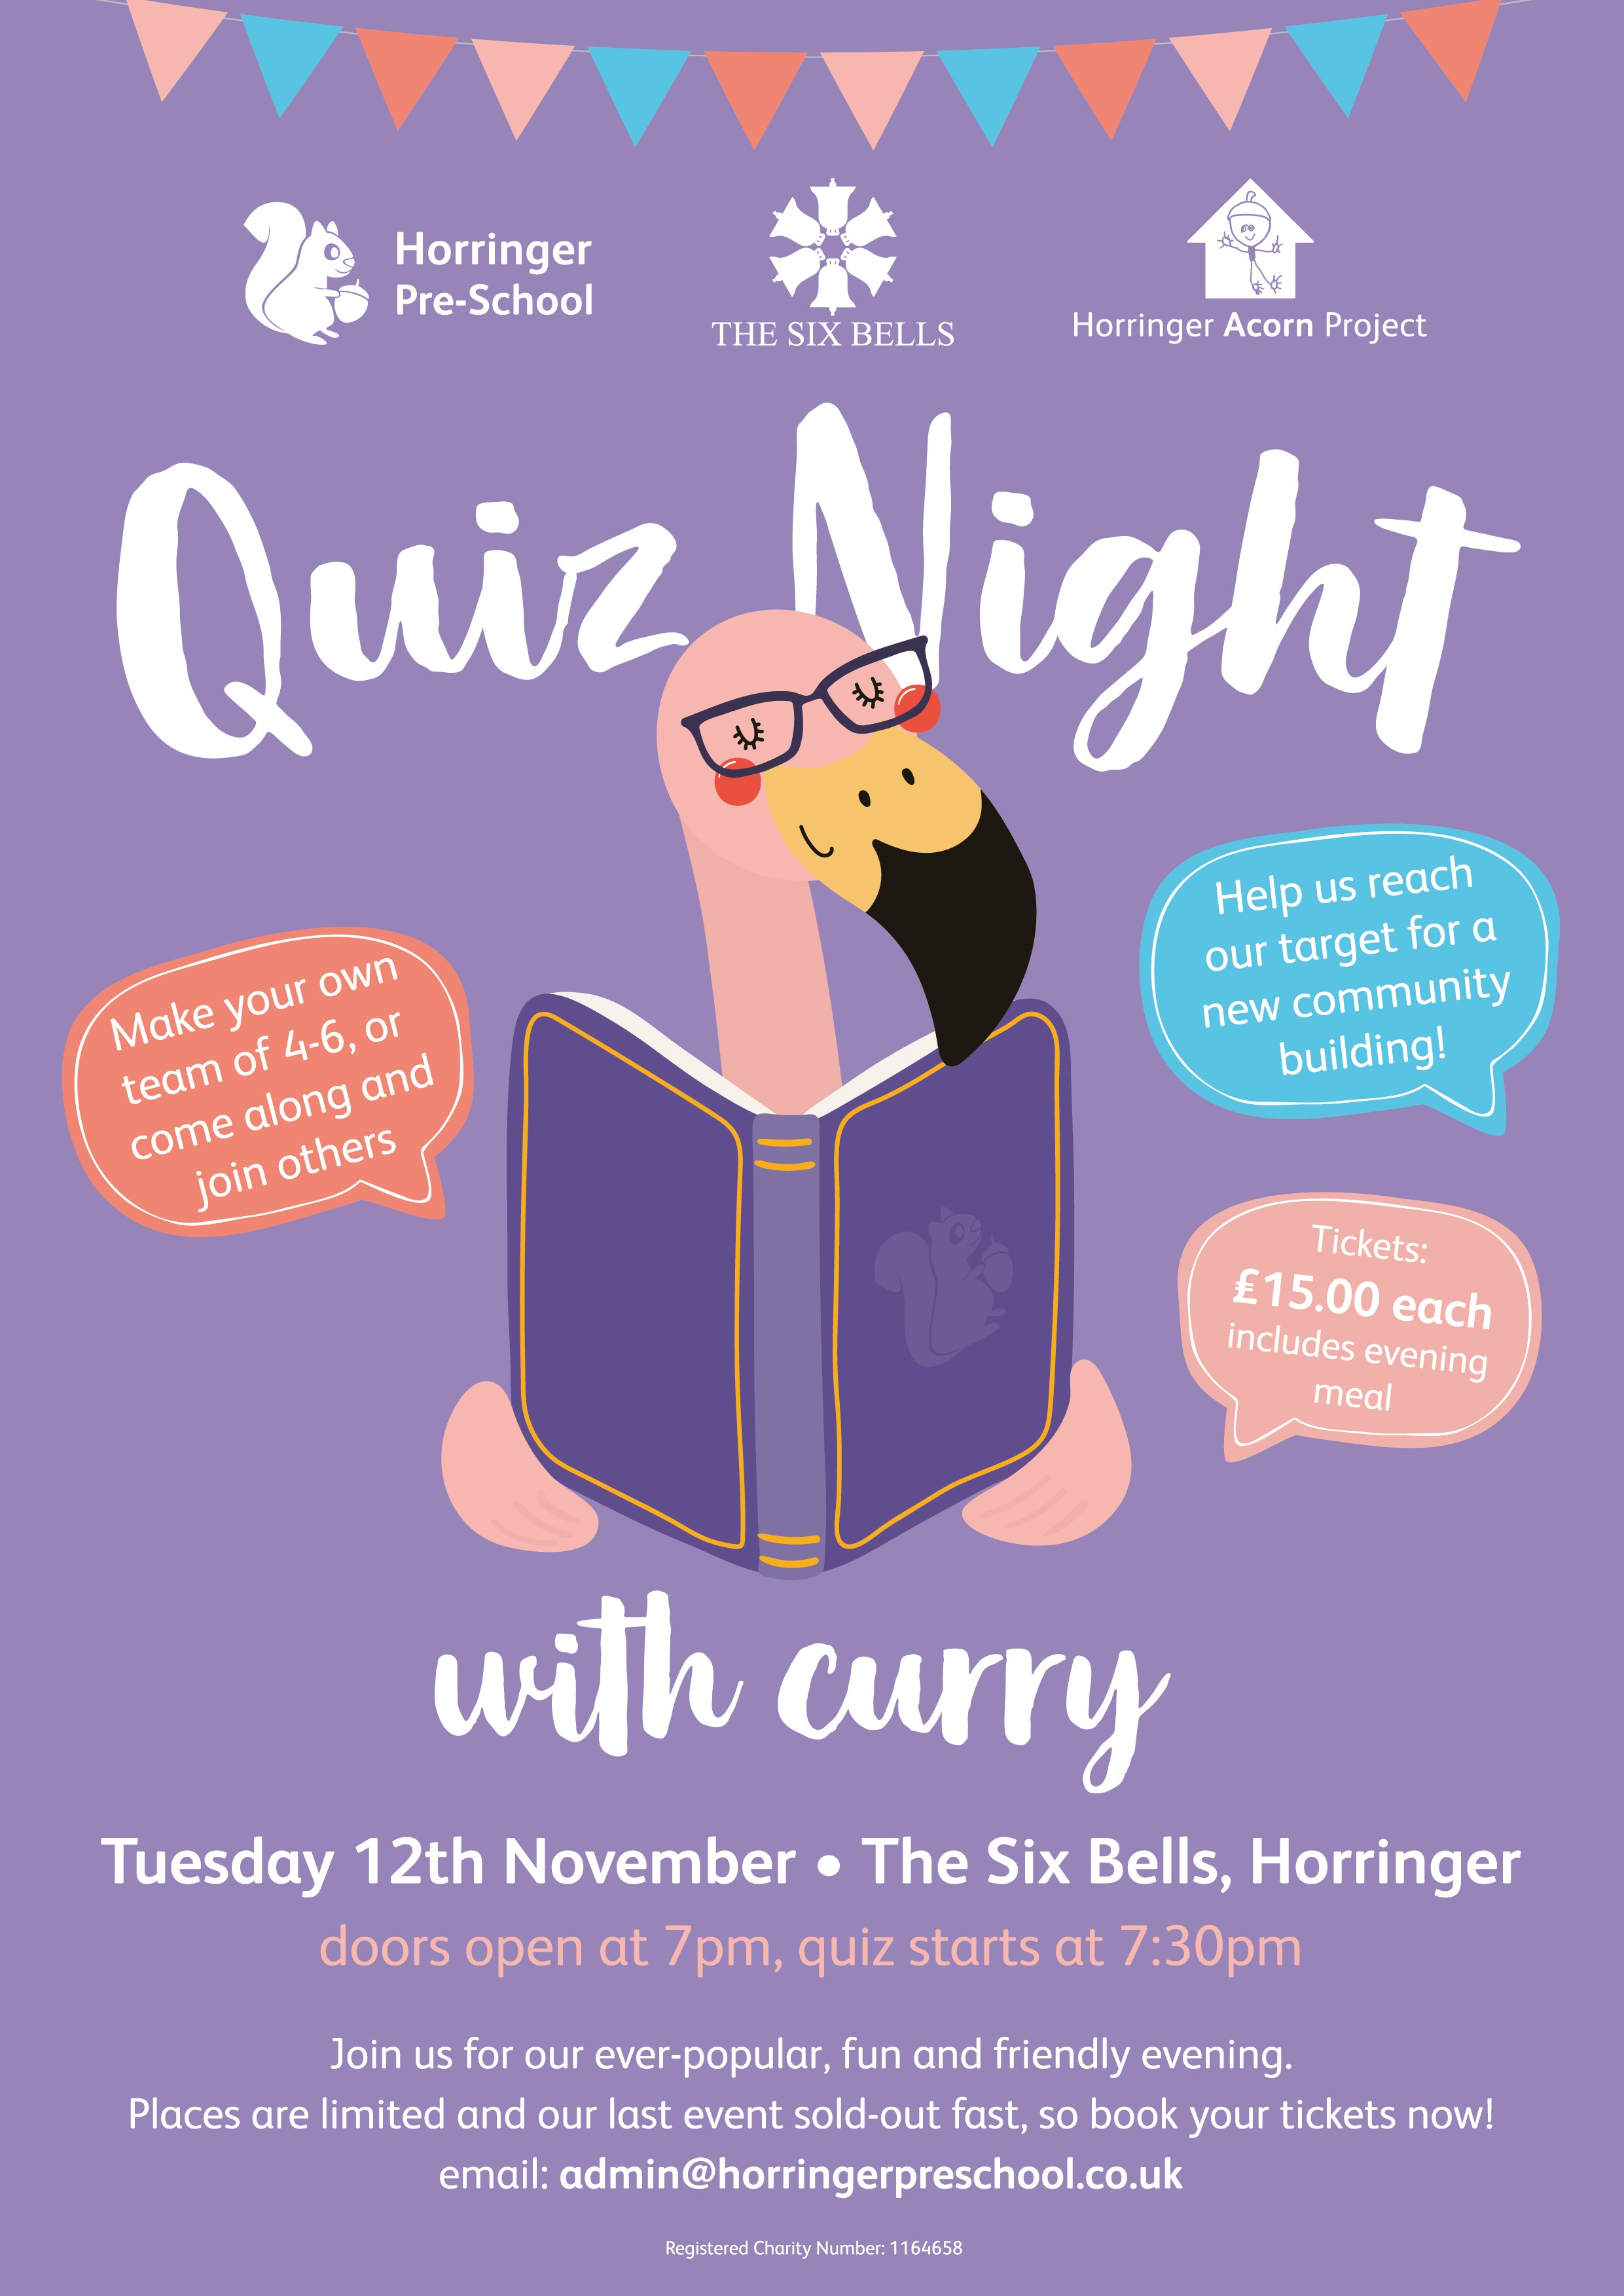 Do you love a good pub quiz? Then join us on the 12th November!